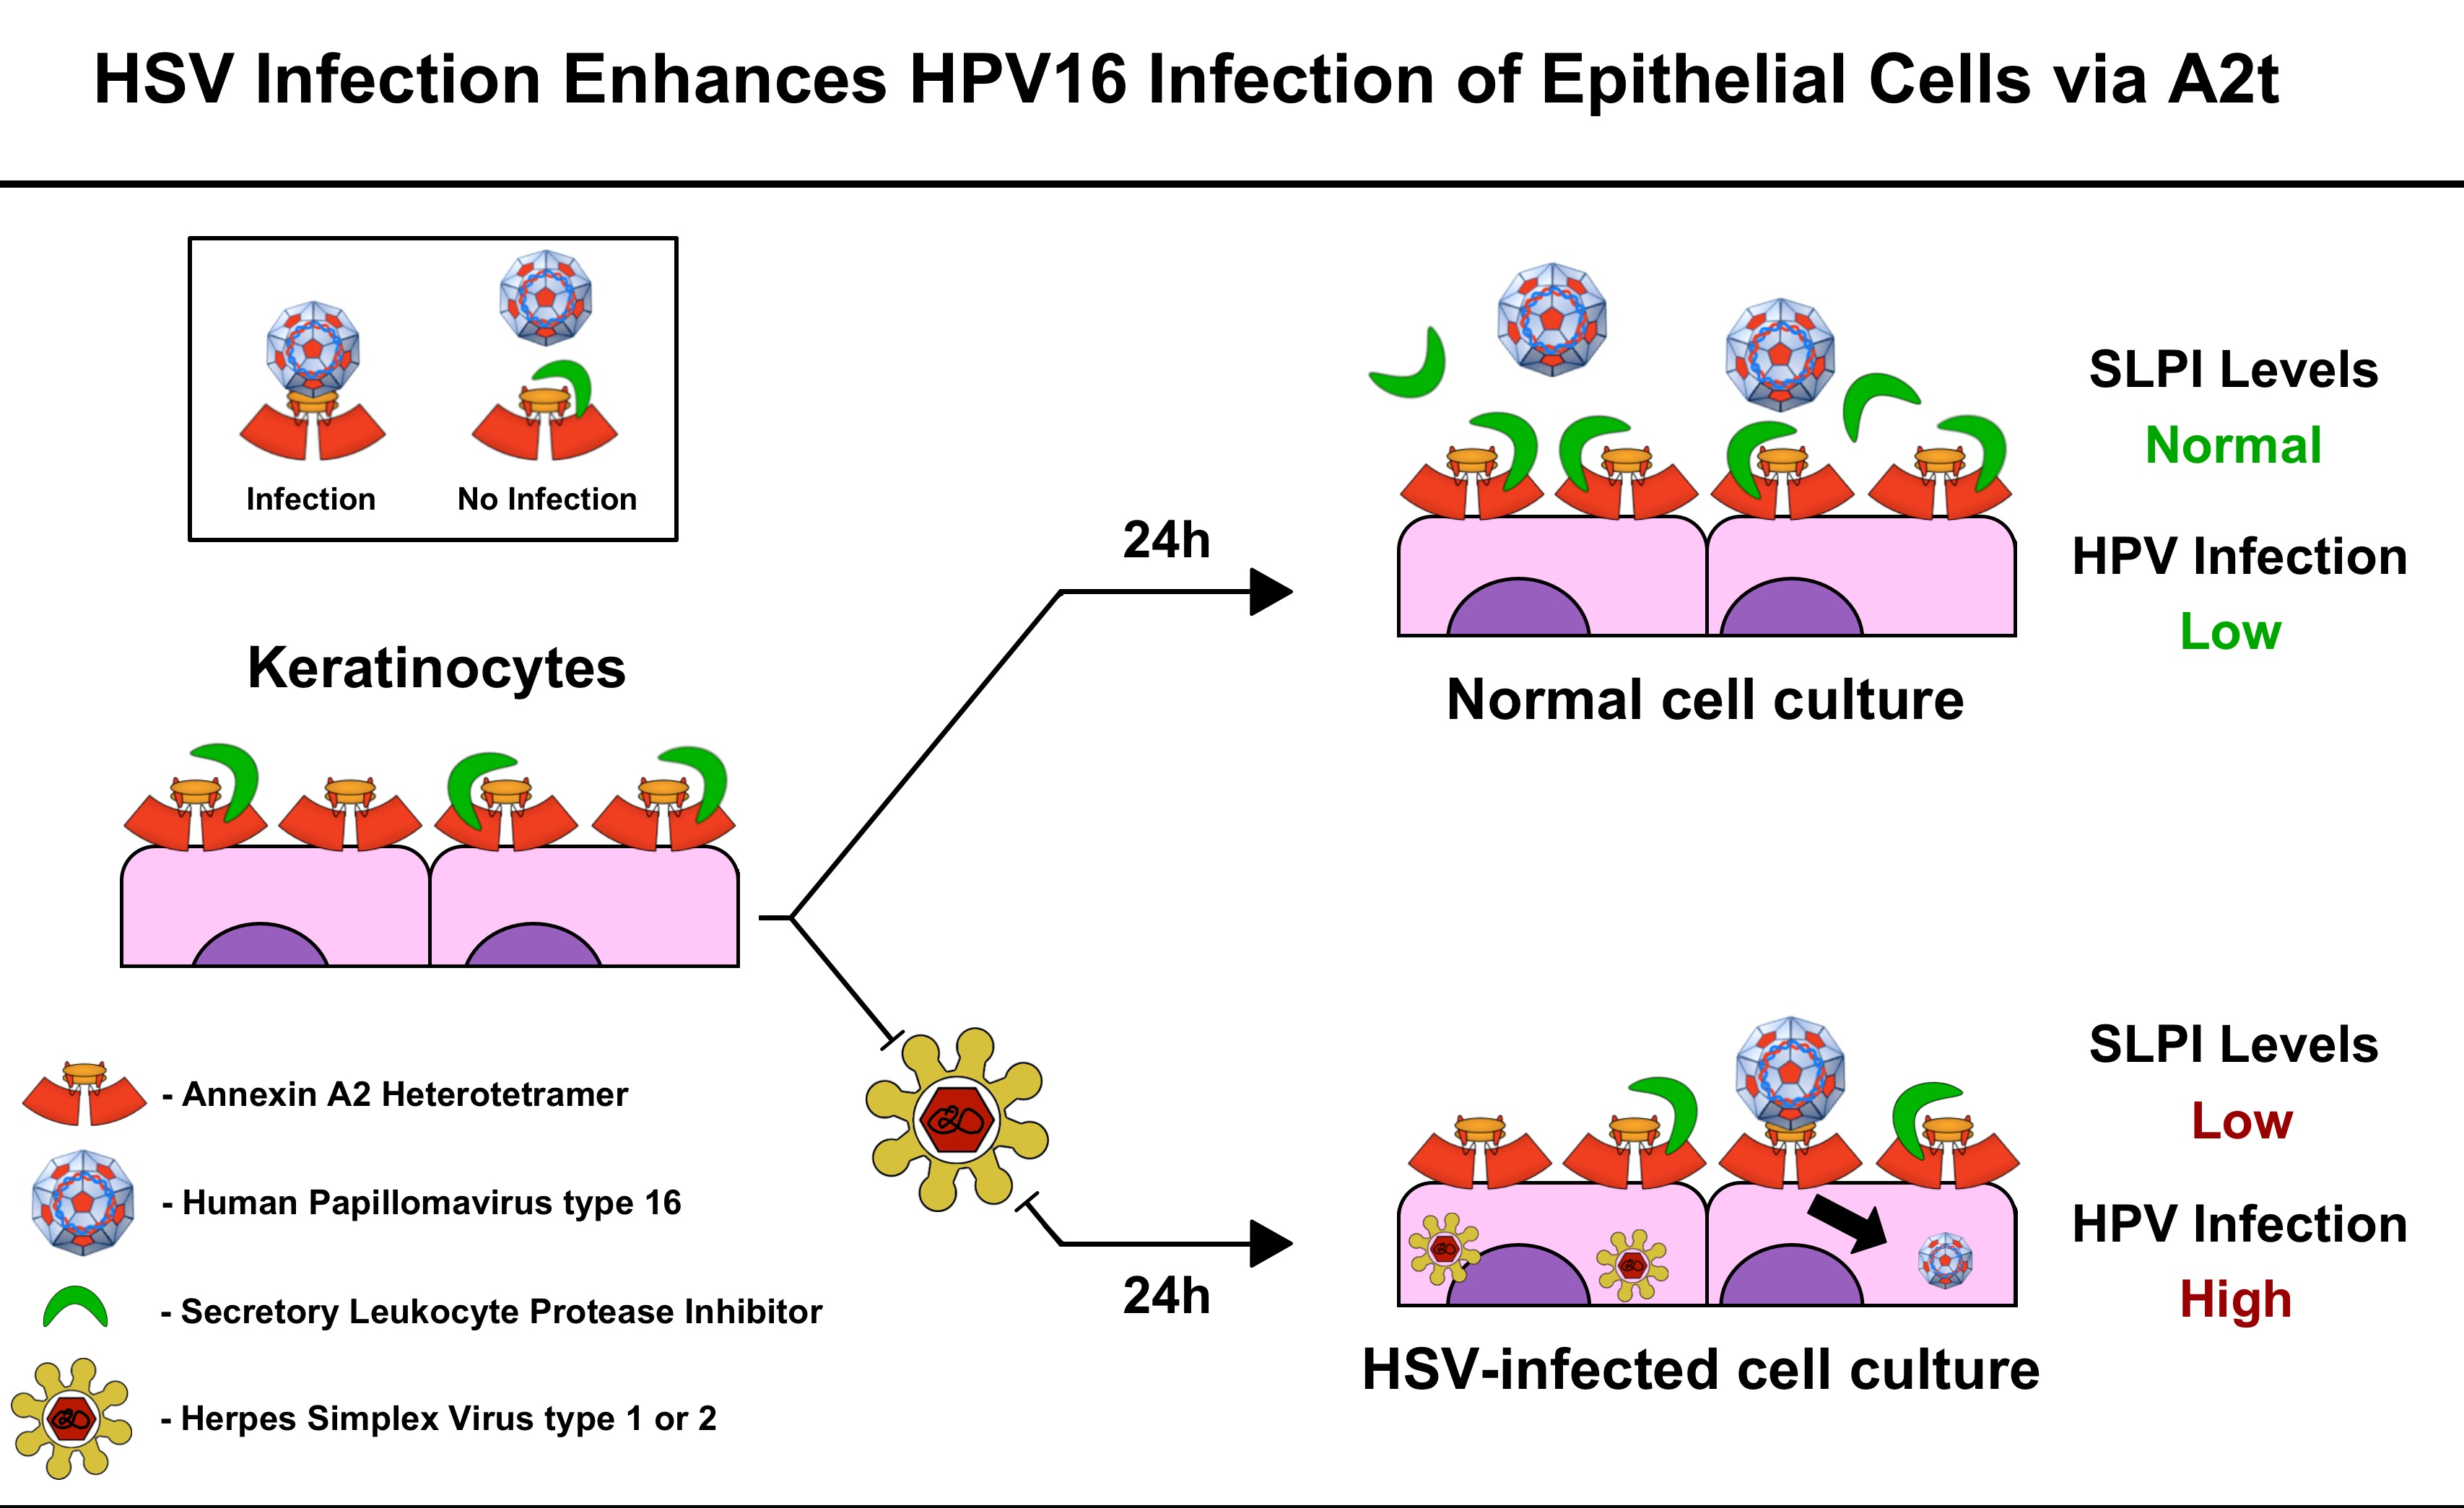 Hpv warts vs herpes Hpv warts and herpes